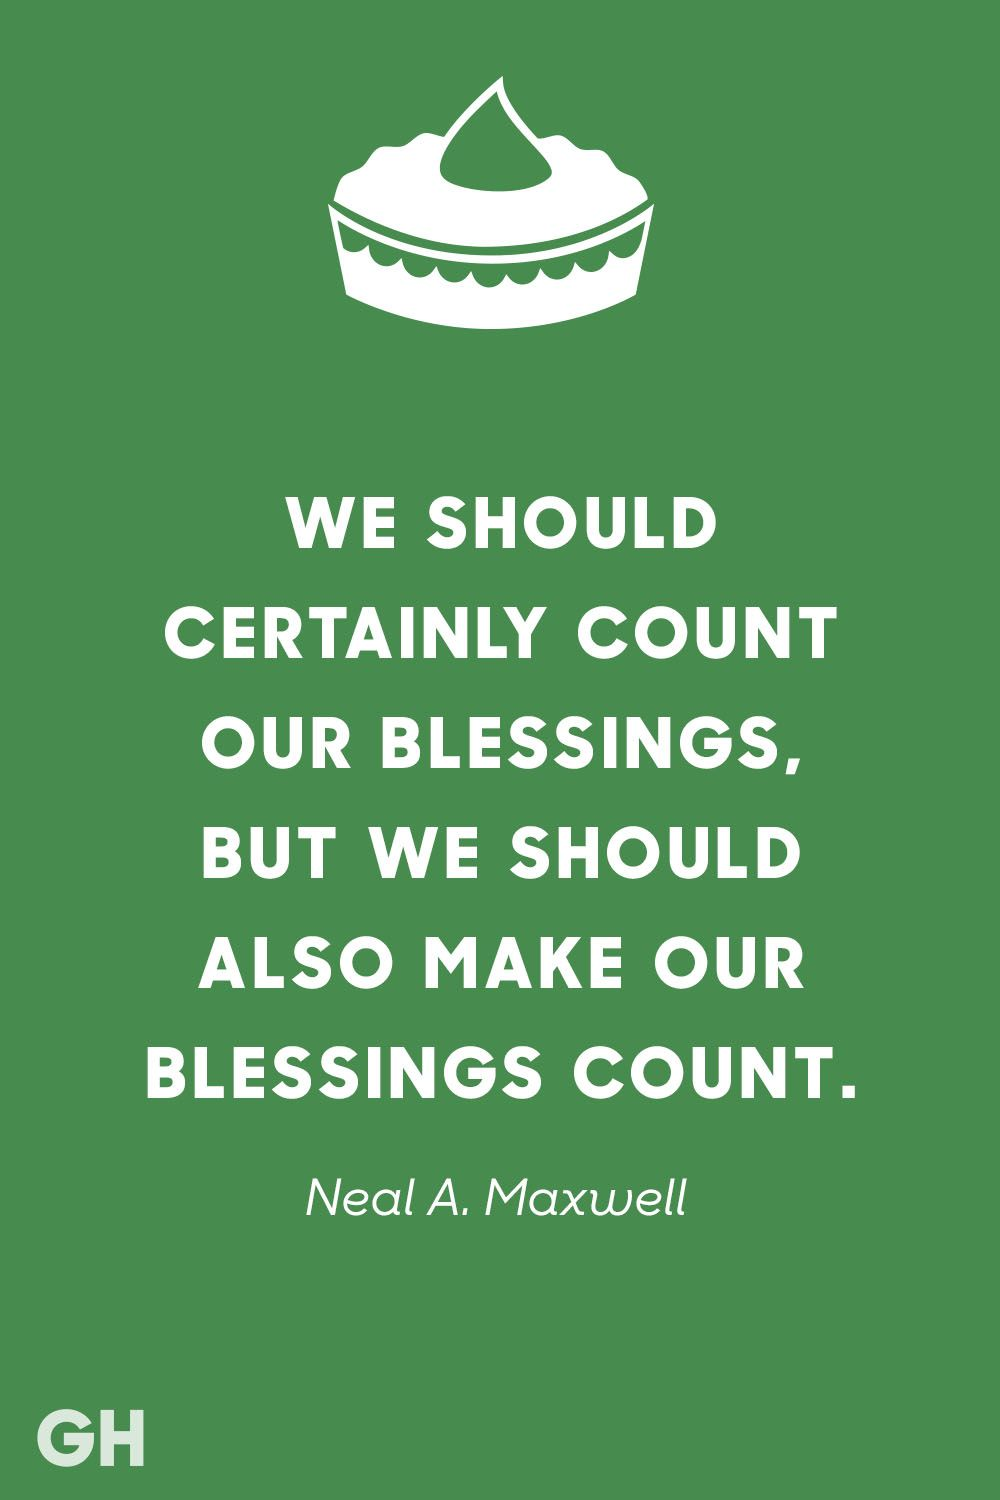 neal a. maxwell thanksgiving quotes